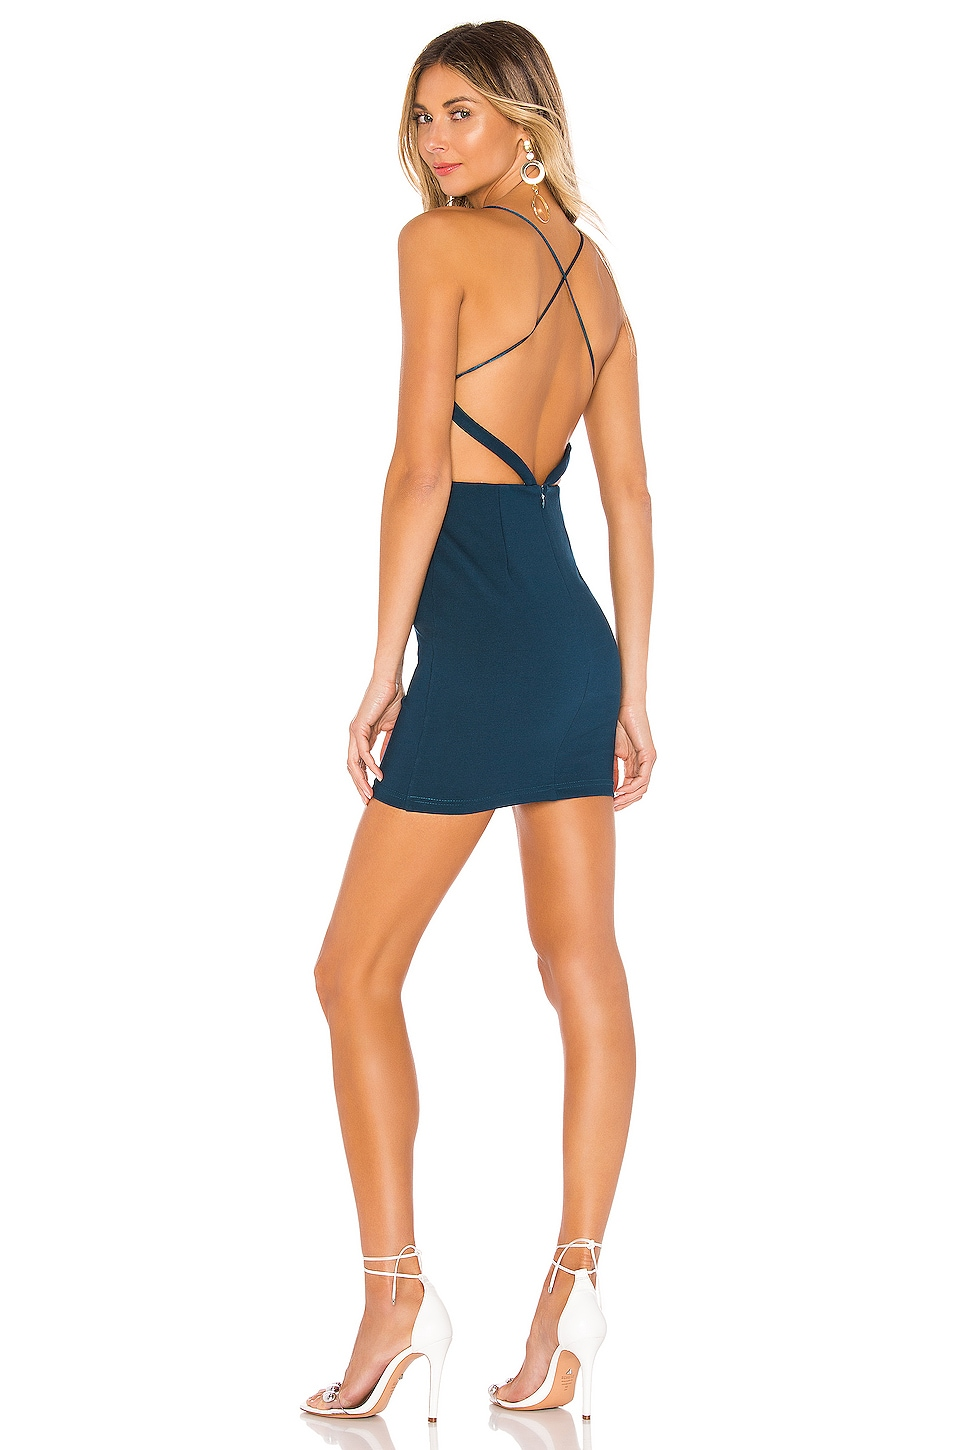 superdown Colby Strappy Back Dress in Teal